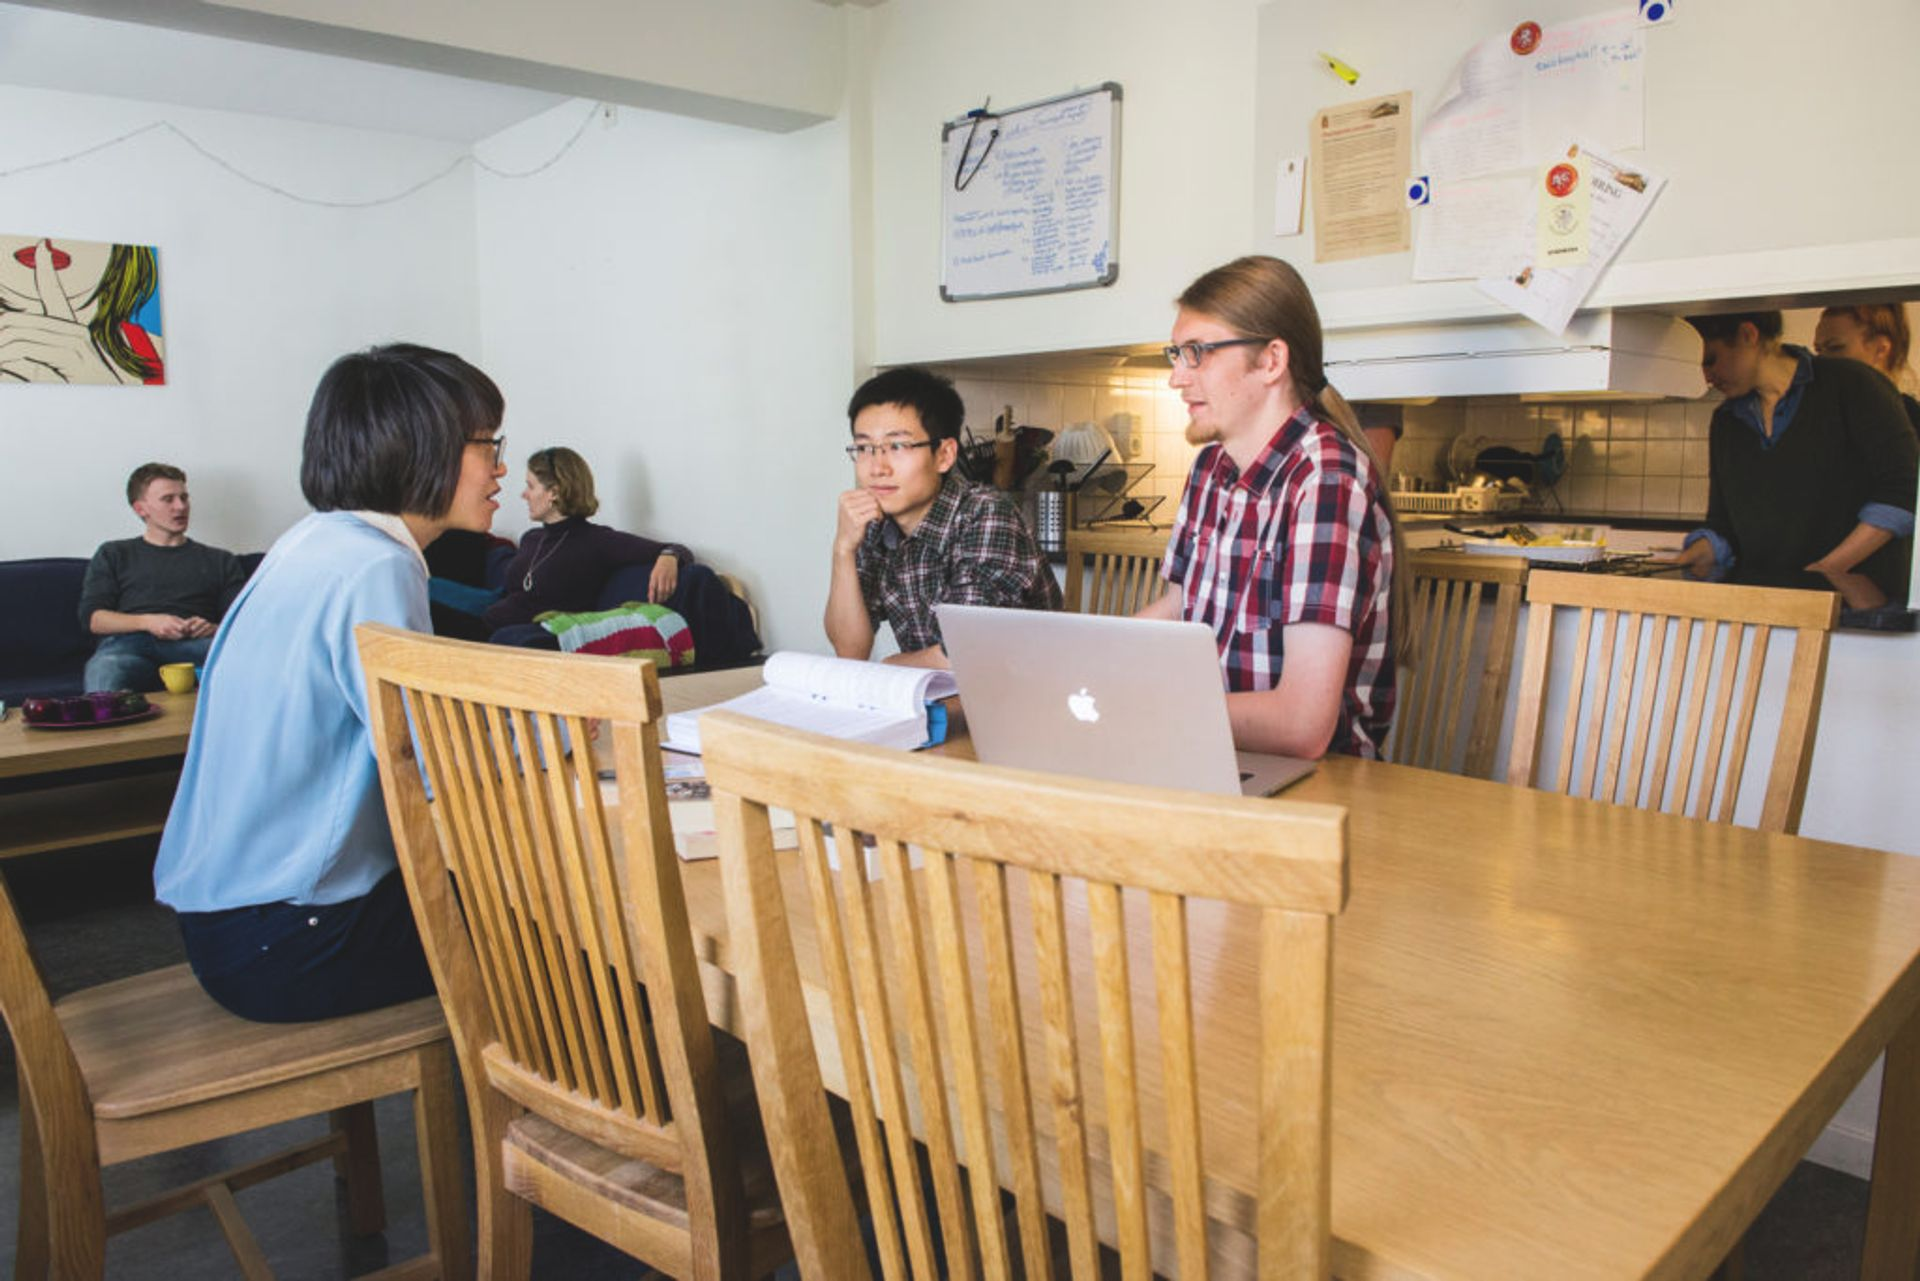 Group of students sitting in a shared kitchen studying.